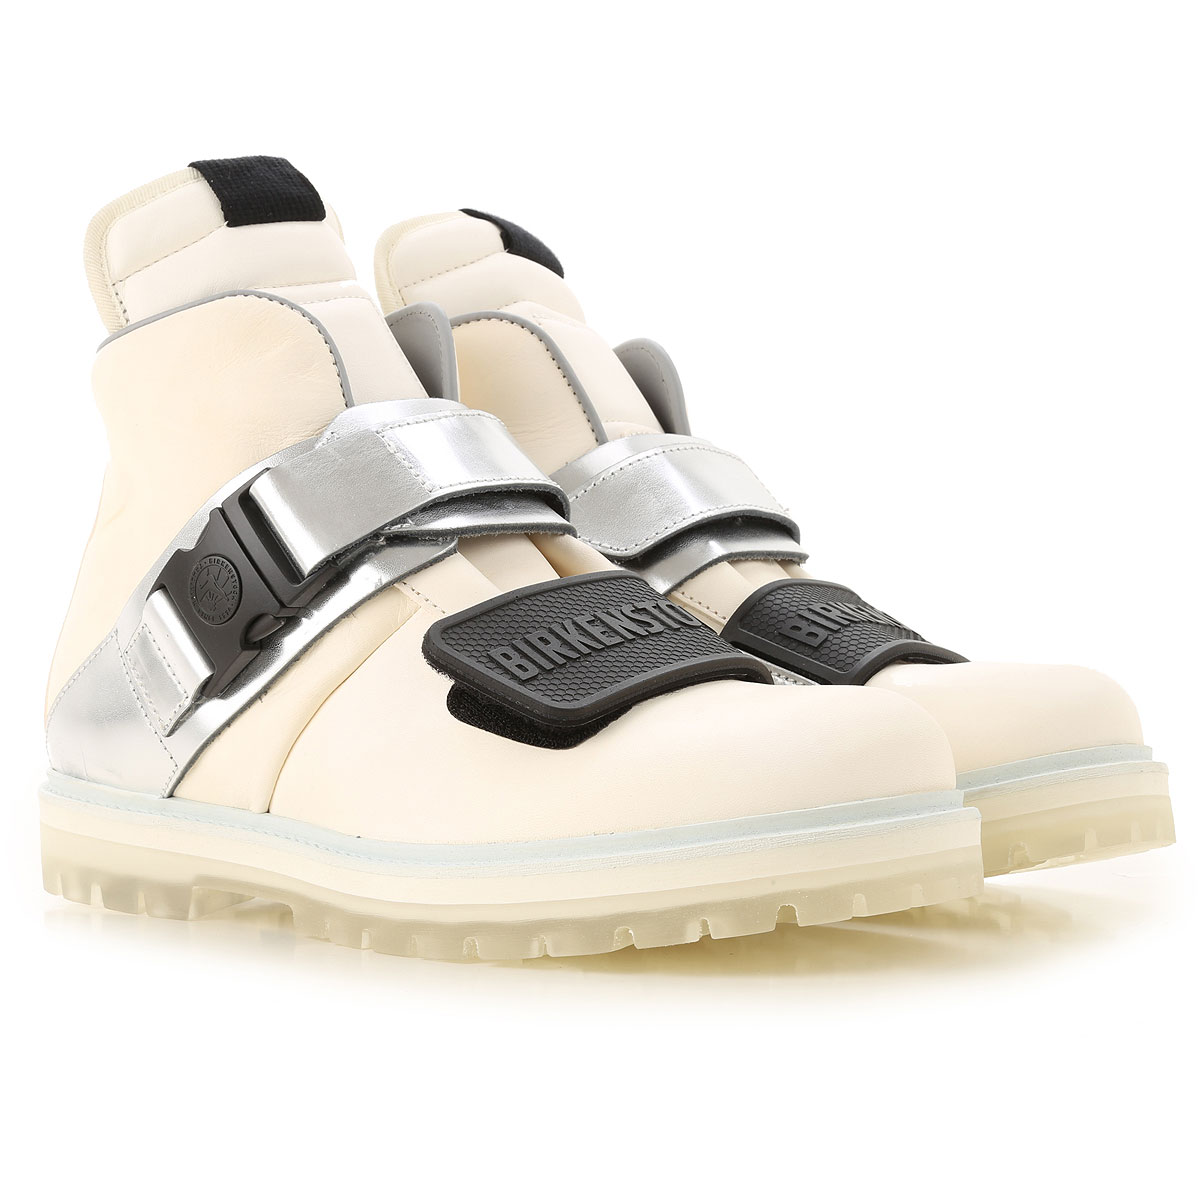 Rick Owens Boots for Men, Booties On Sale in Outlet, Cream, Leather, 2019, 10 10.5 7.5 8 9